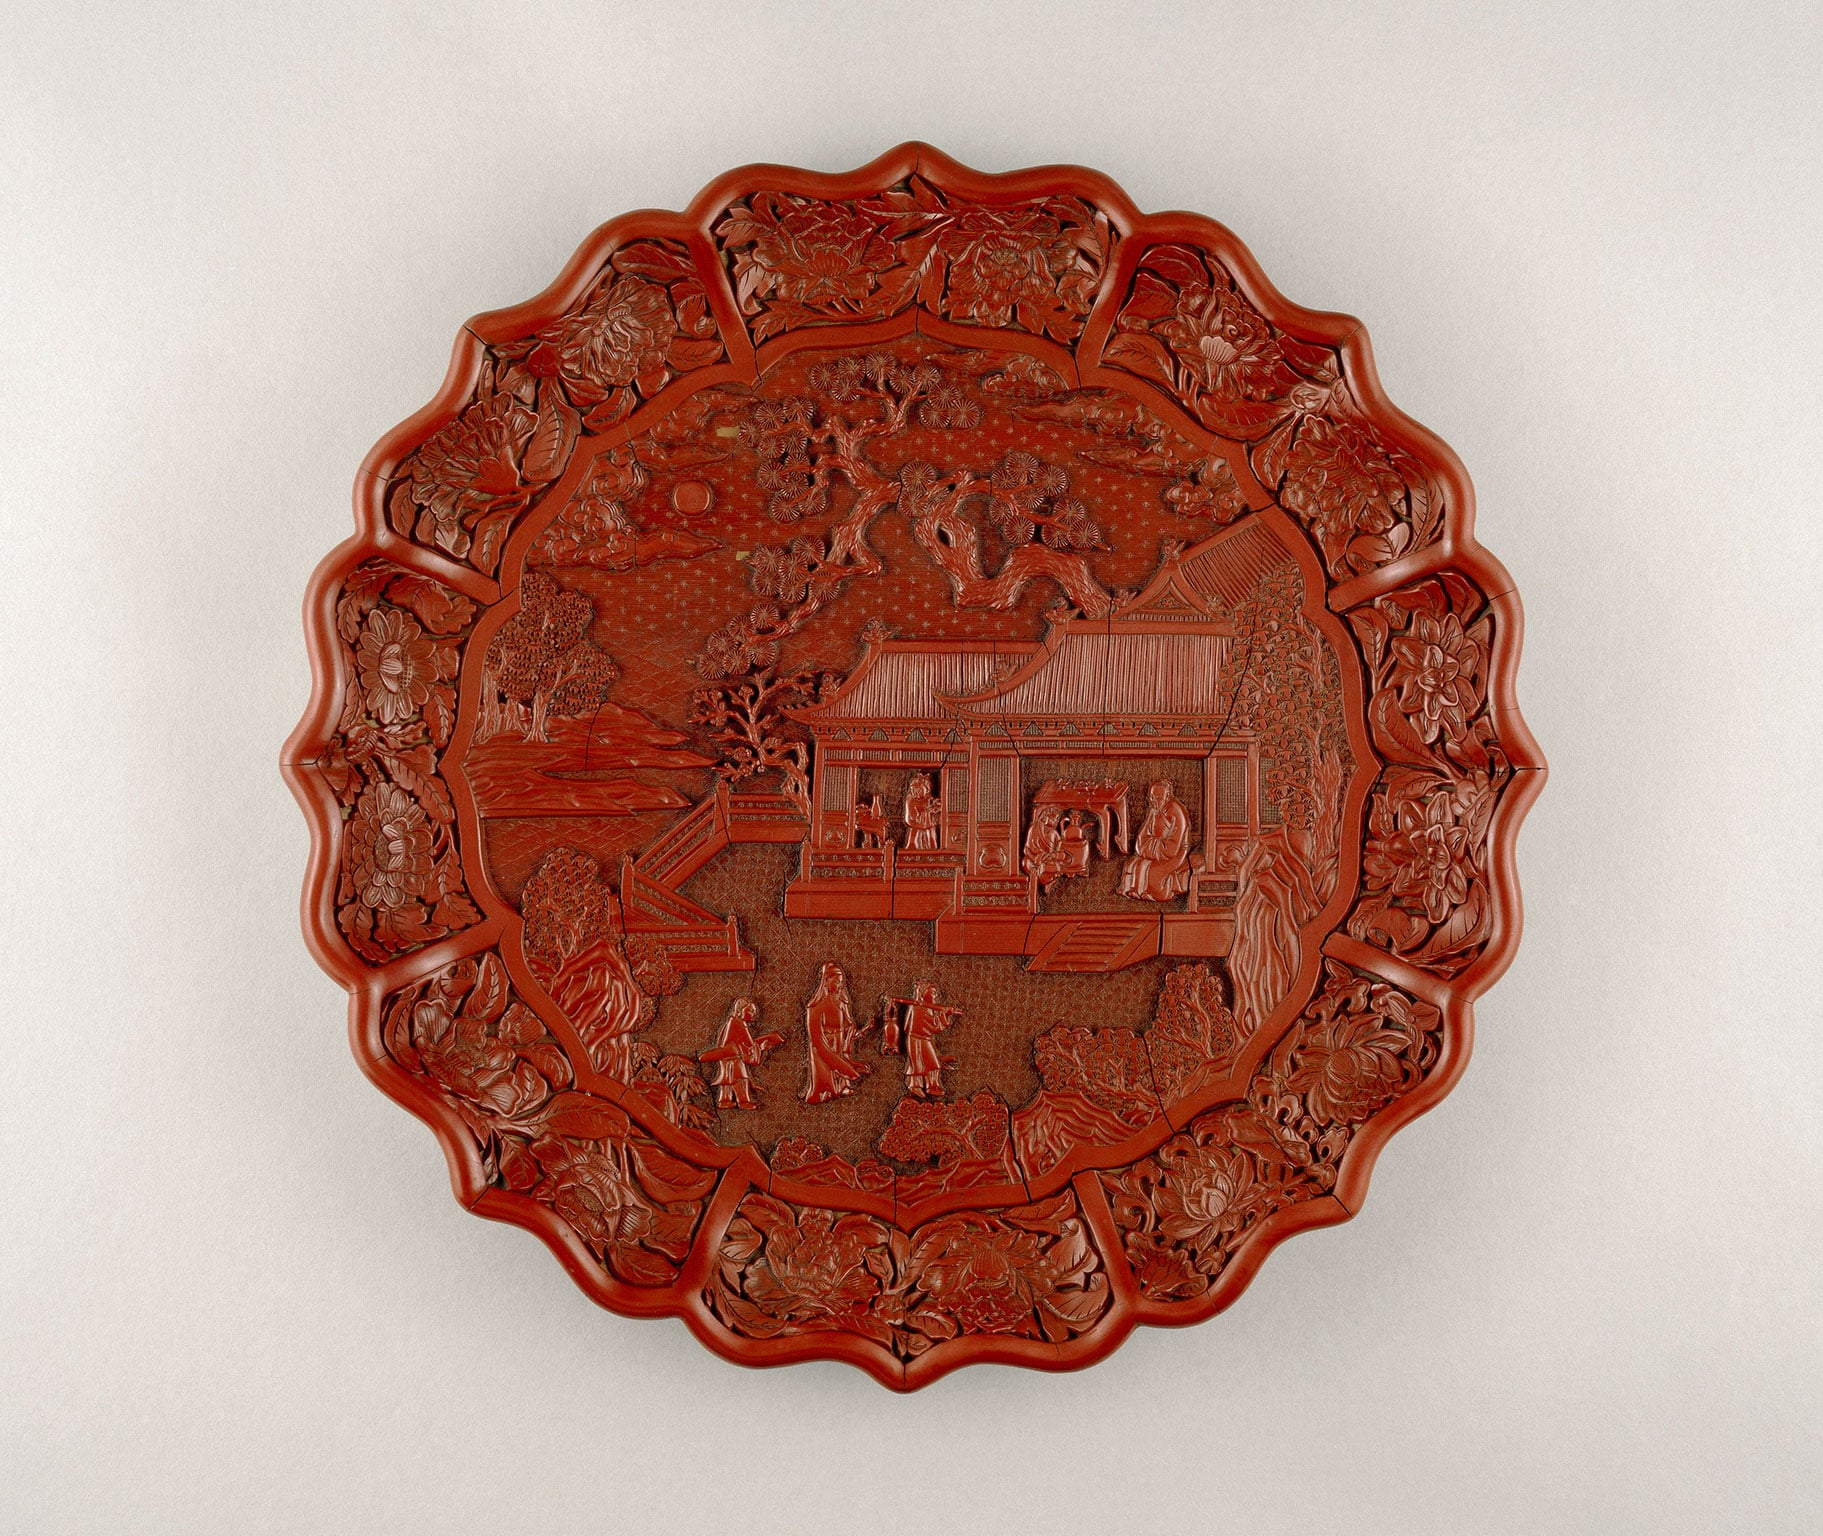 Carved red lacquer on wood core, Yongle mark and period 1403-24, South China